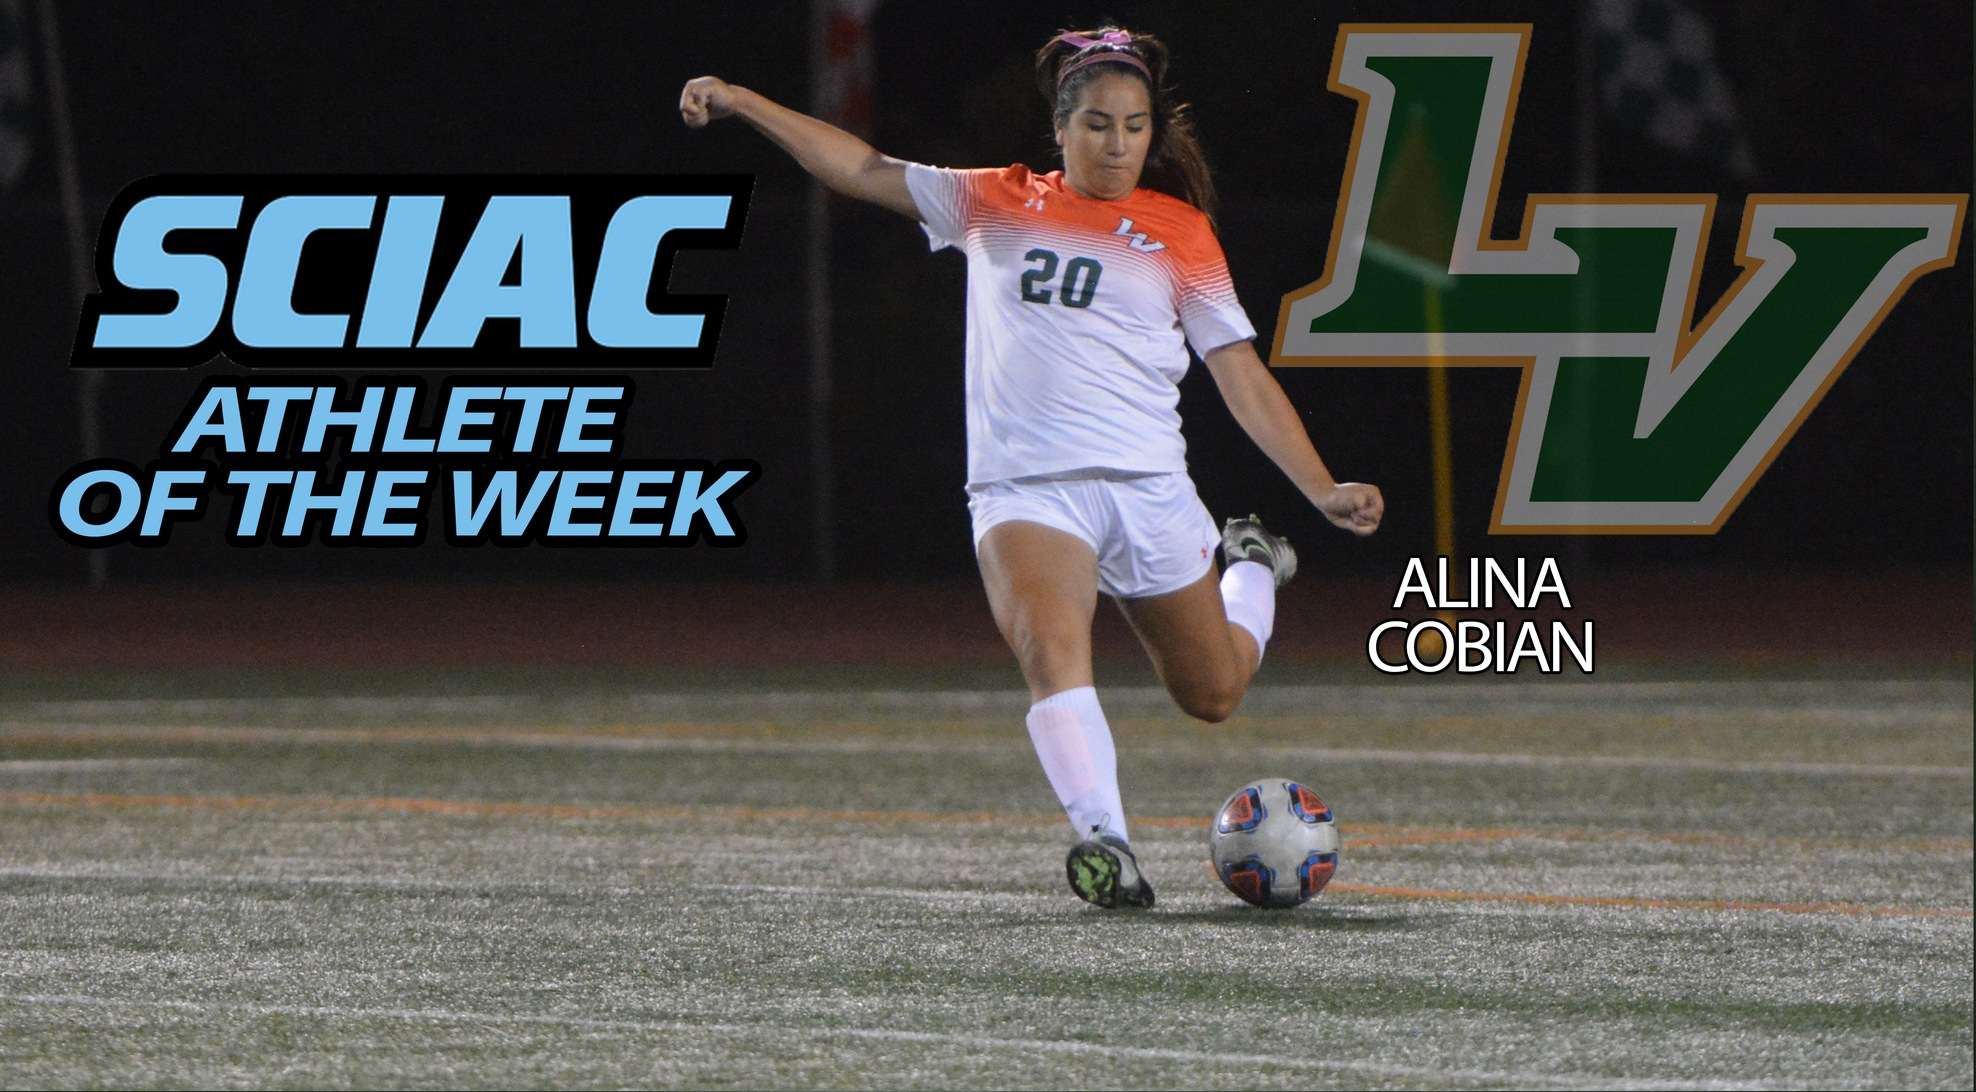 Cobian Named SCIAC Athlete of the Week